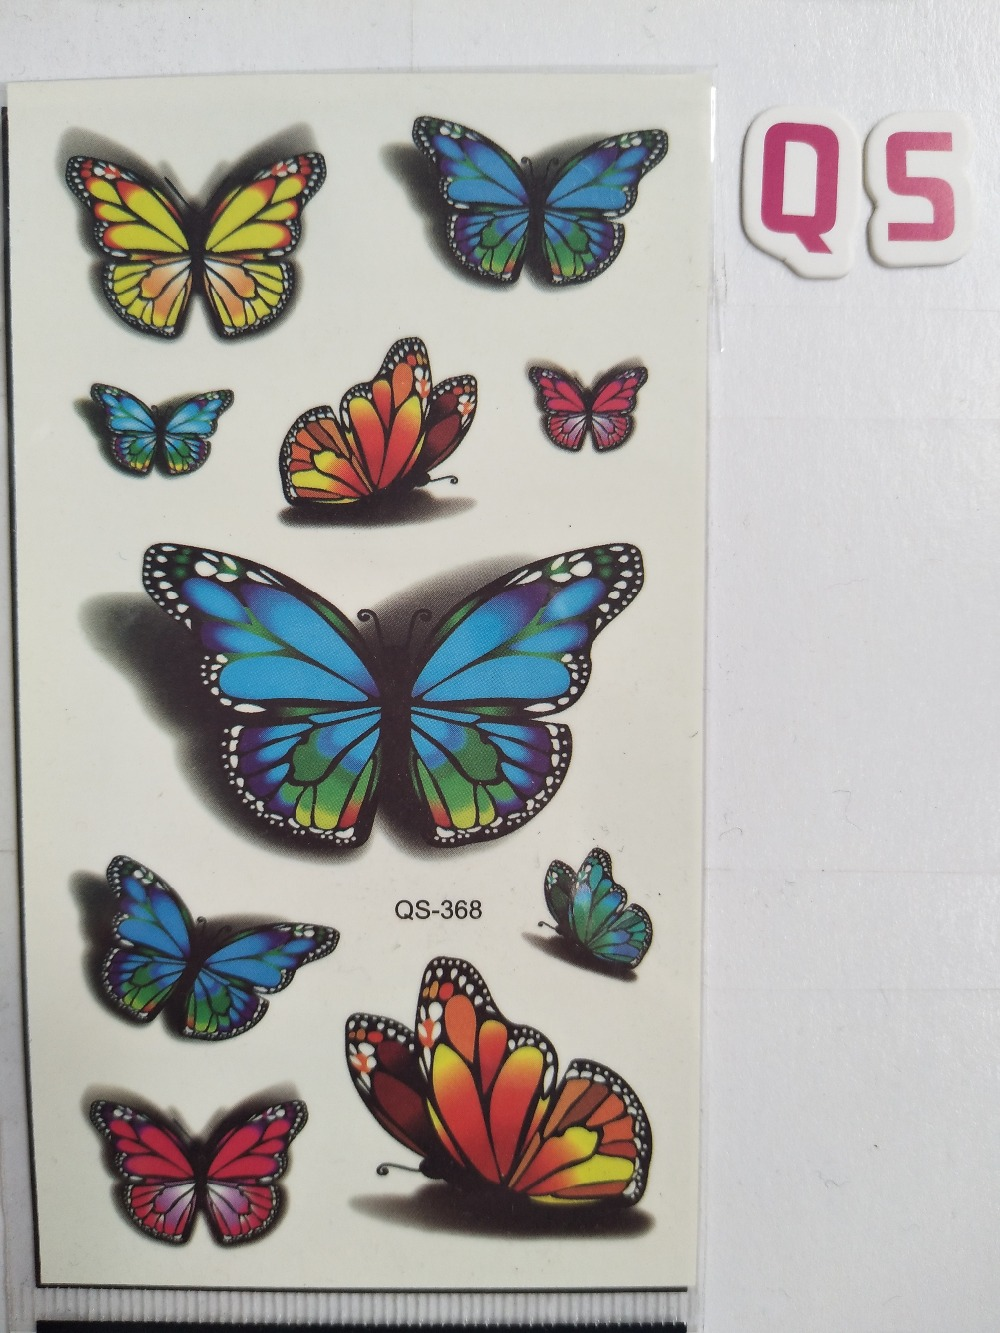 Waterproof Temporary Tattoo Stickers Butterfly Insect Fake Tatto Geometric Animal Flash Tatoo Hand Back Foot For Girl Women Men Temporary Tattoos Aliexpress